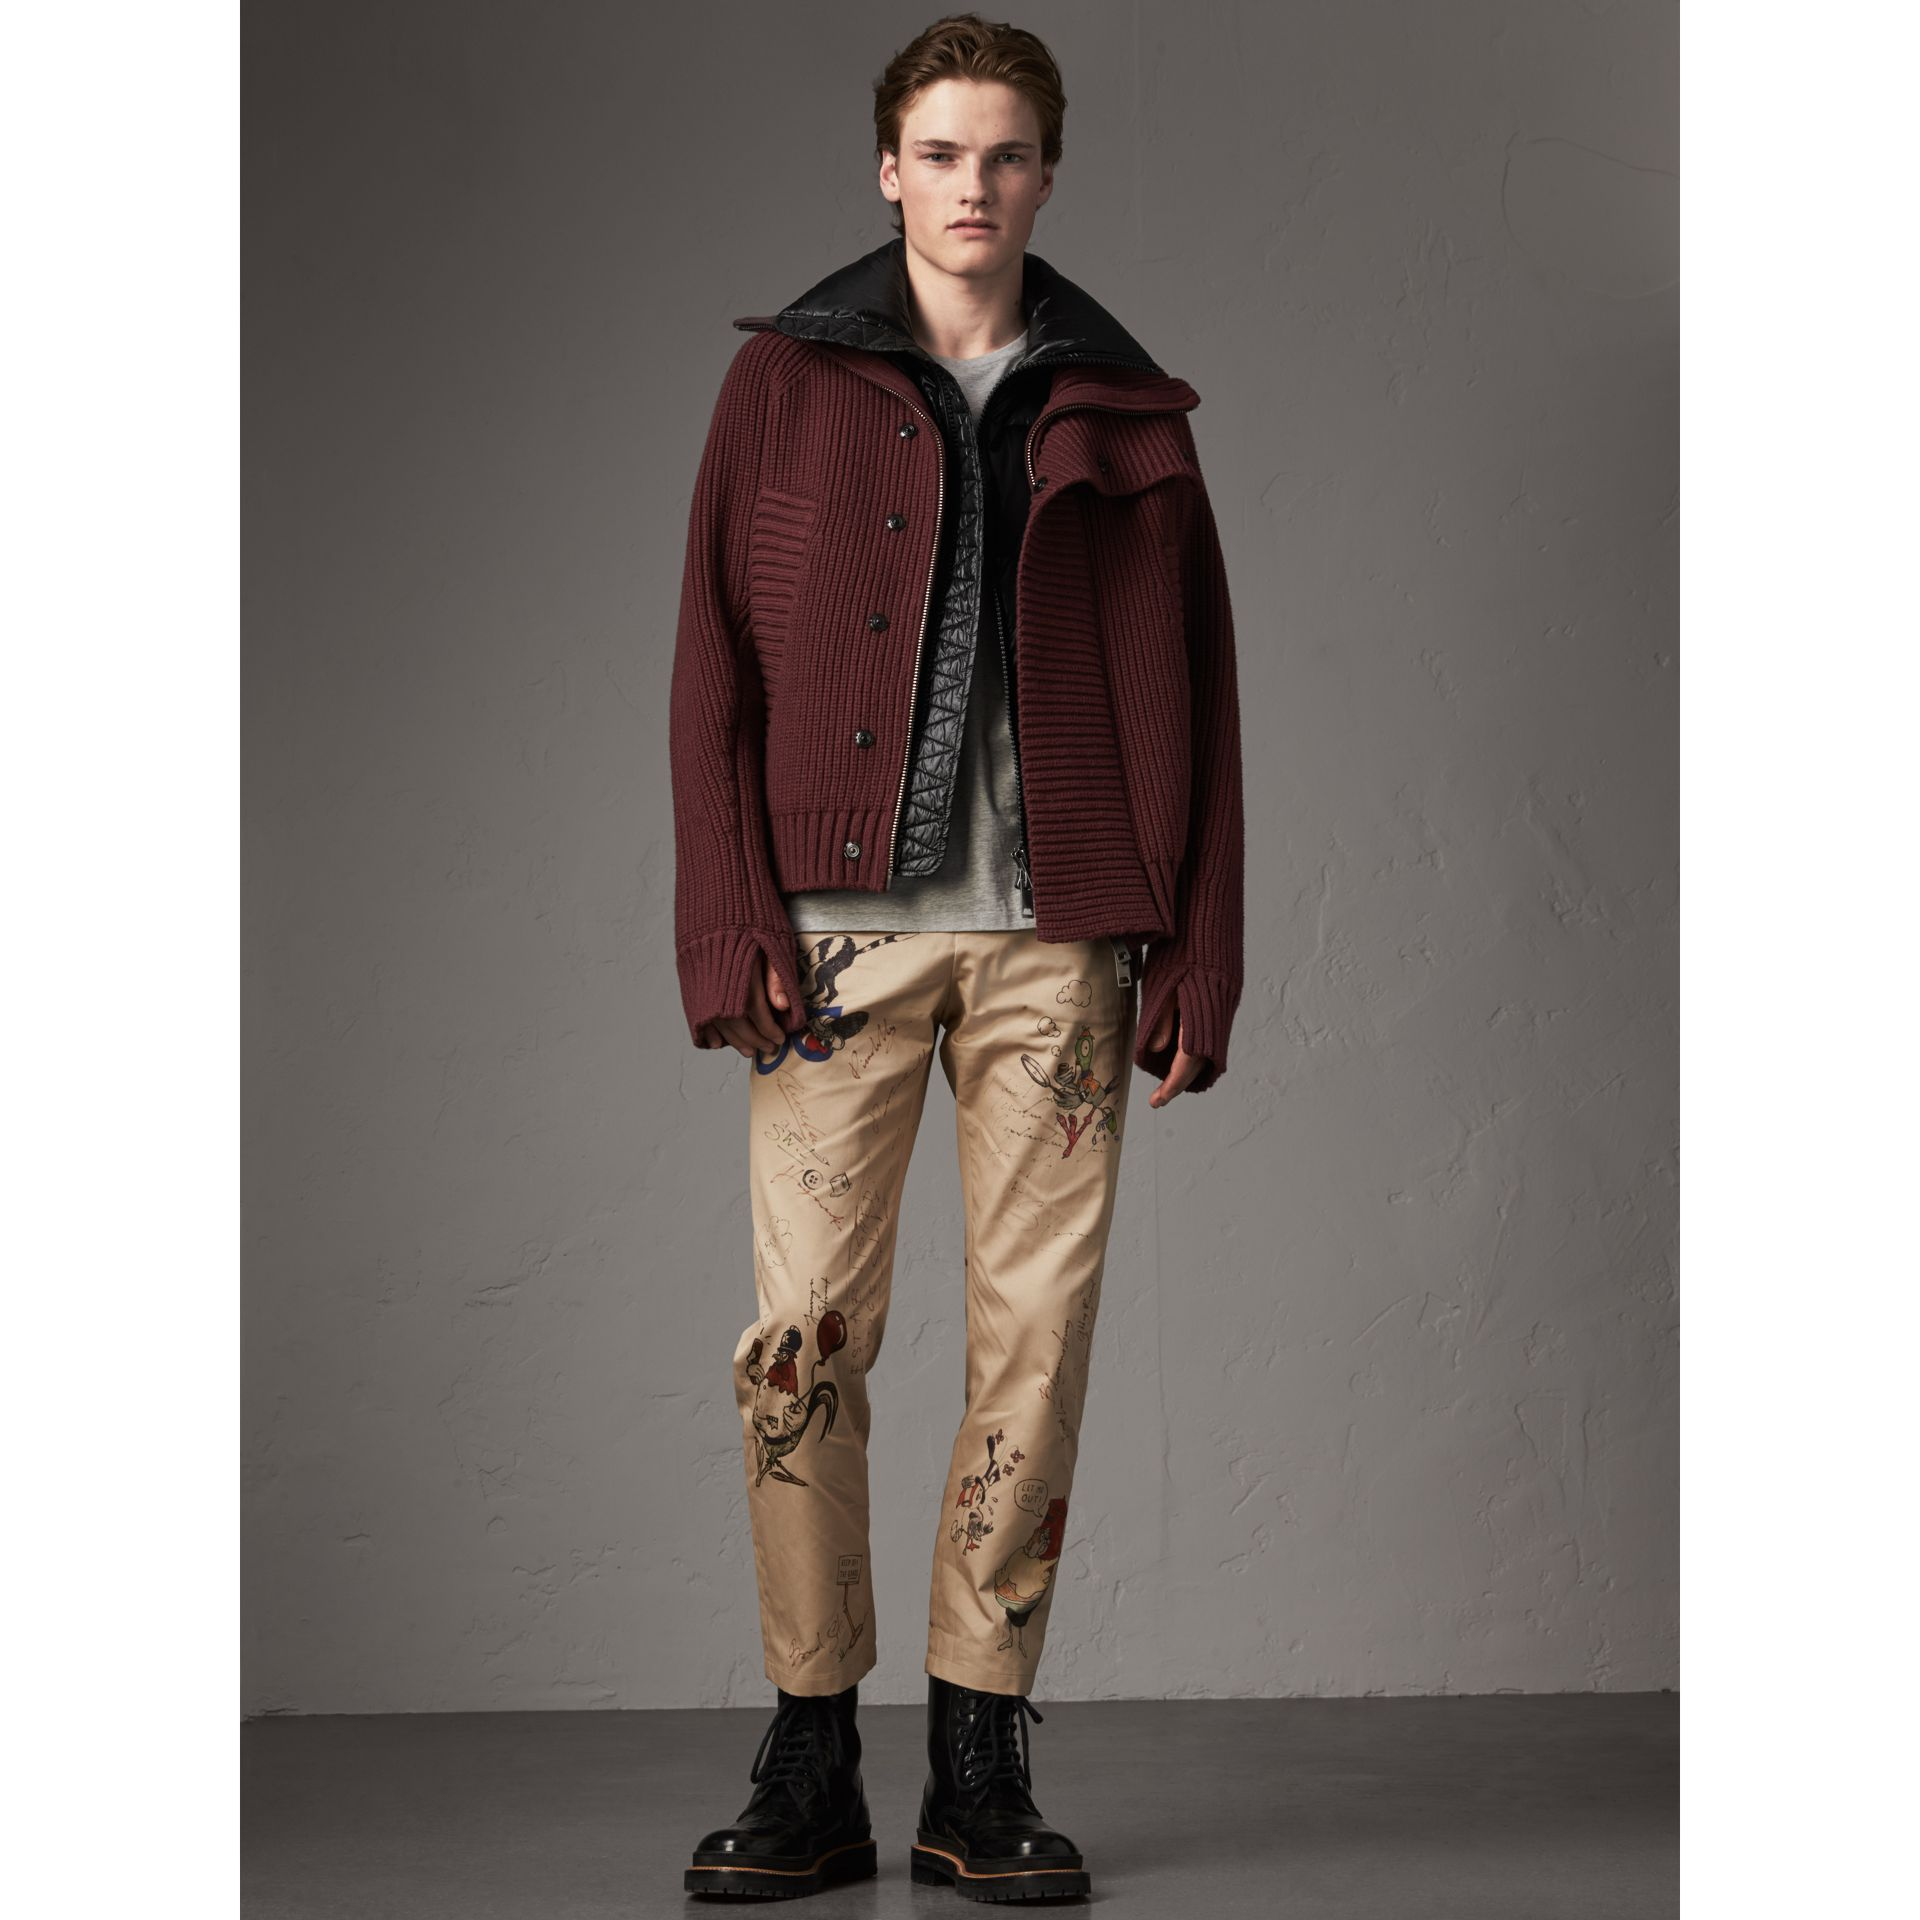 Rib Knit Cotton Blend Jacket with Down-filled Gilet in Mahogany Red - Men | Burberry - gallery image 6